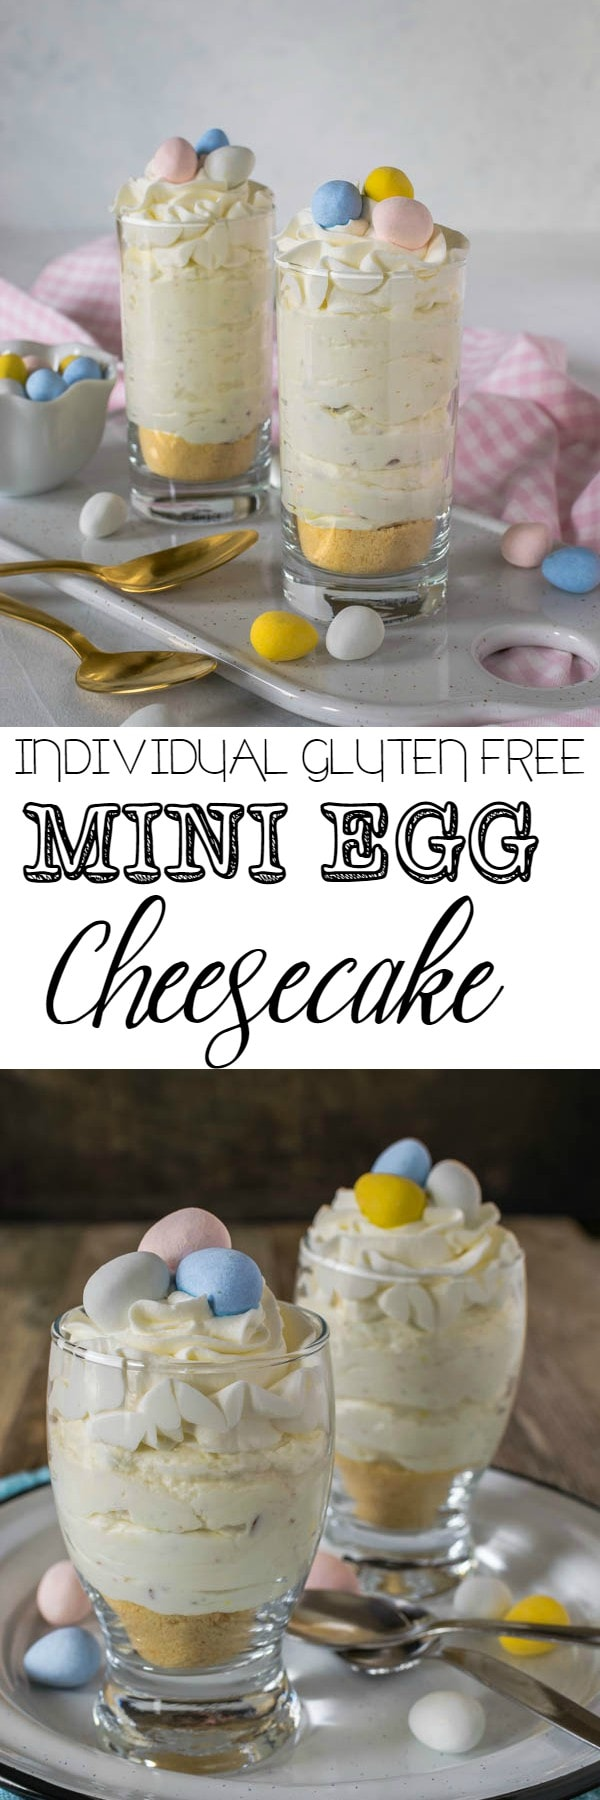 Gluten free No Bake Mini Egg Cheesecakes will rescue you if you're stuck looking for a last minute Easter dessert. Make them in individual jars or glasses, they can be ready in less than 30 minutes.